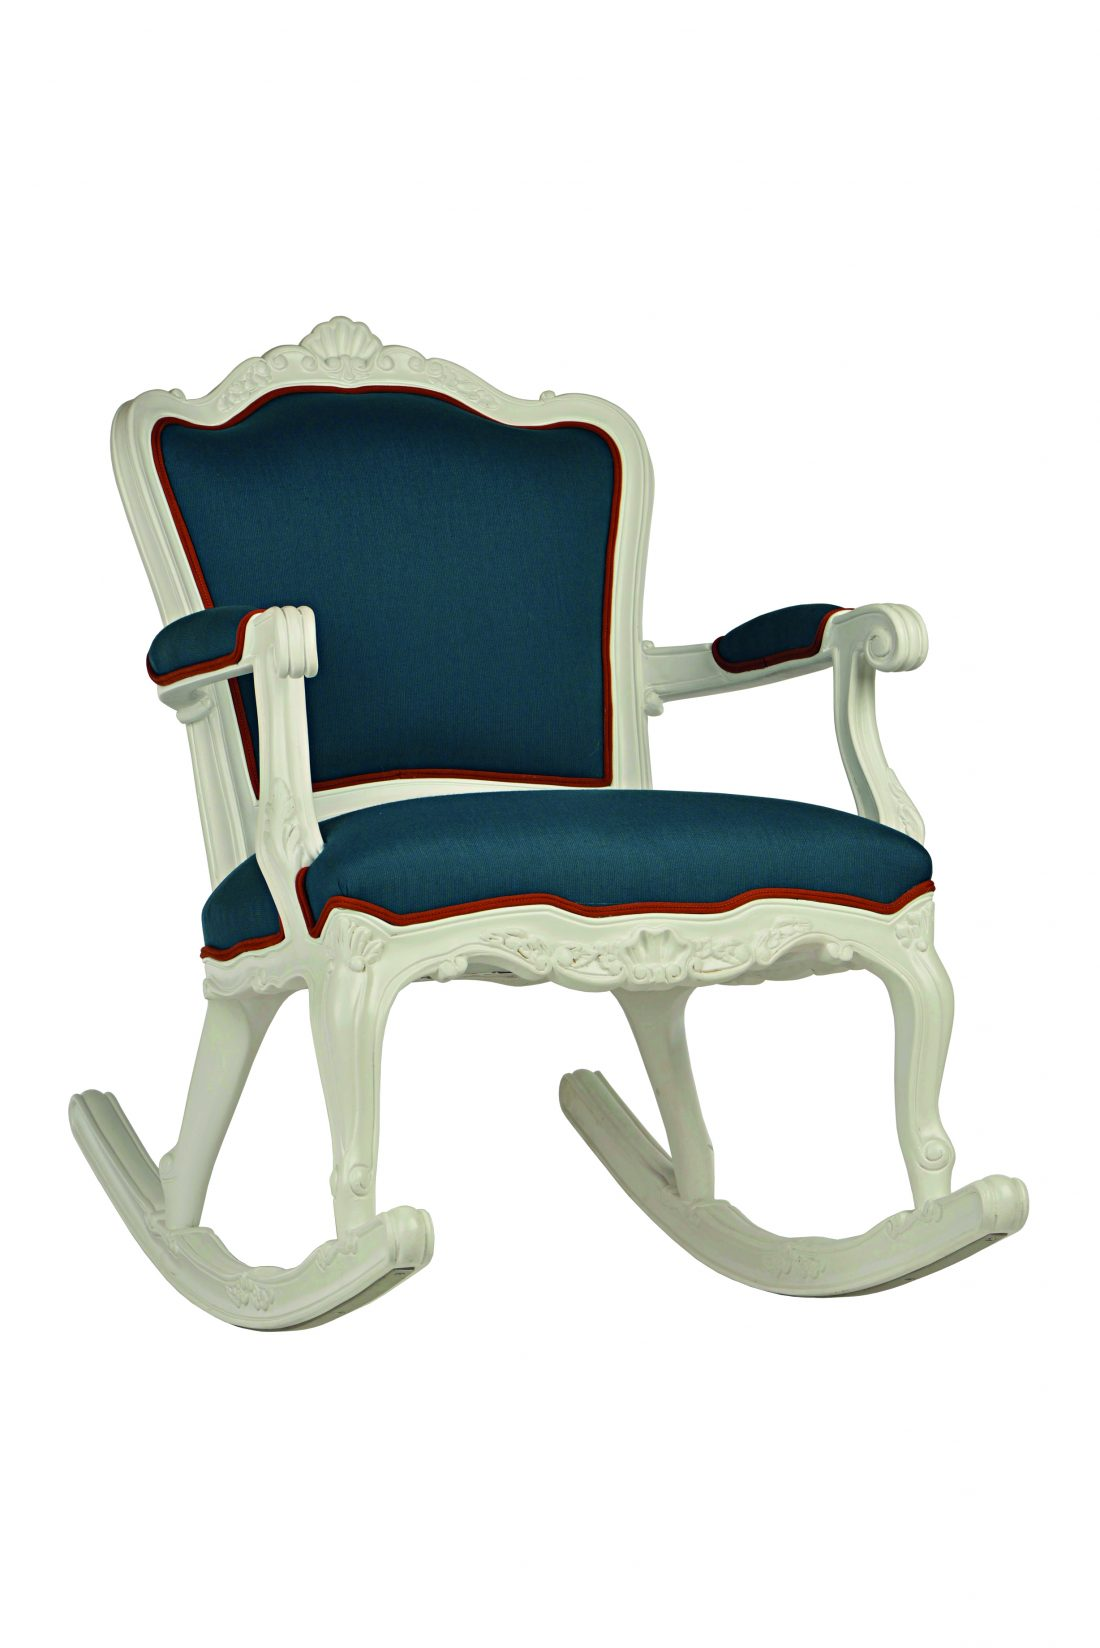 Rocking Chair Design Middle East